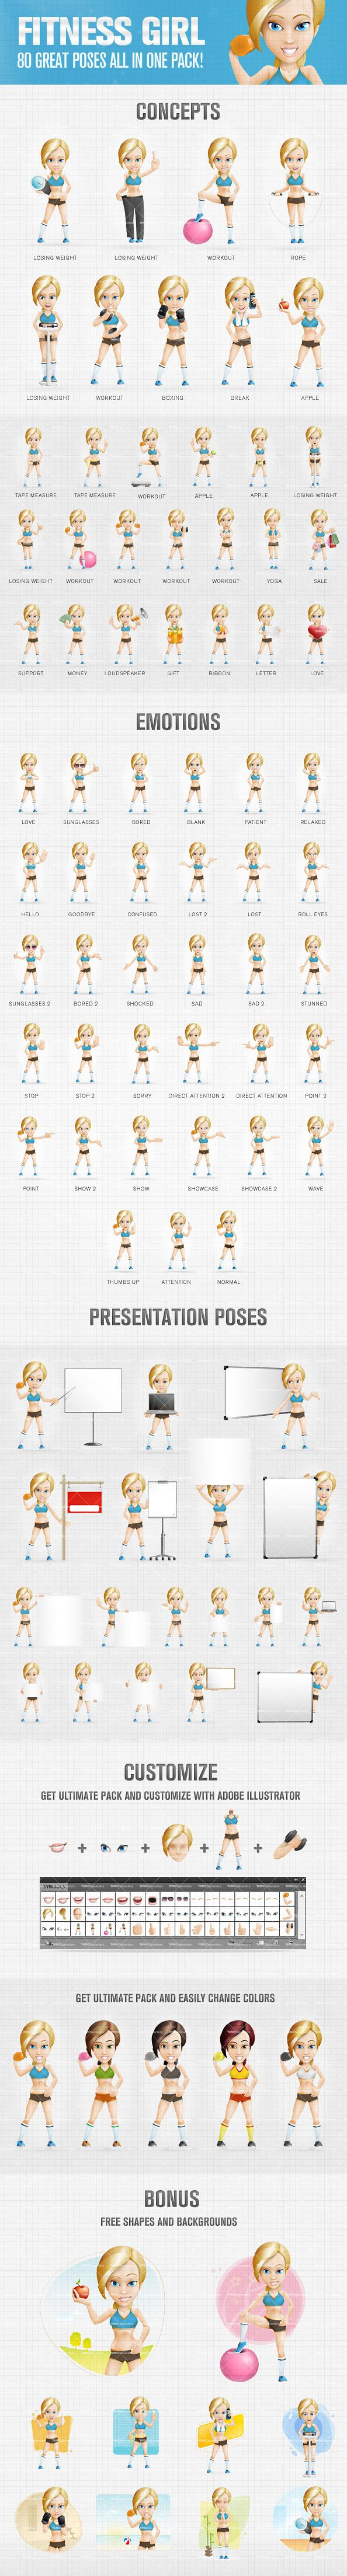 Fitness girl cartoon character presented in 80 different postures and emotions - performing physical activities, losing weight and doing workouts in various